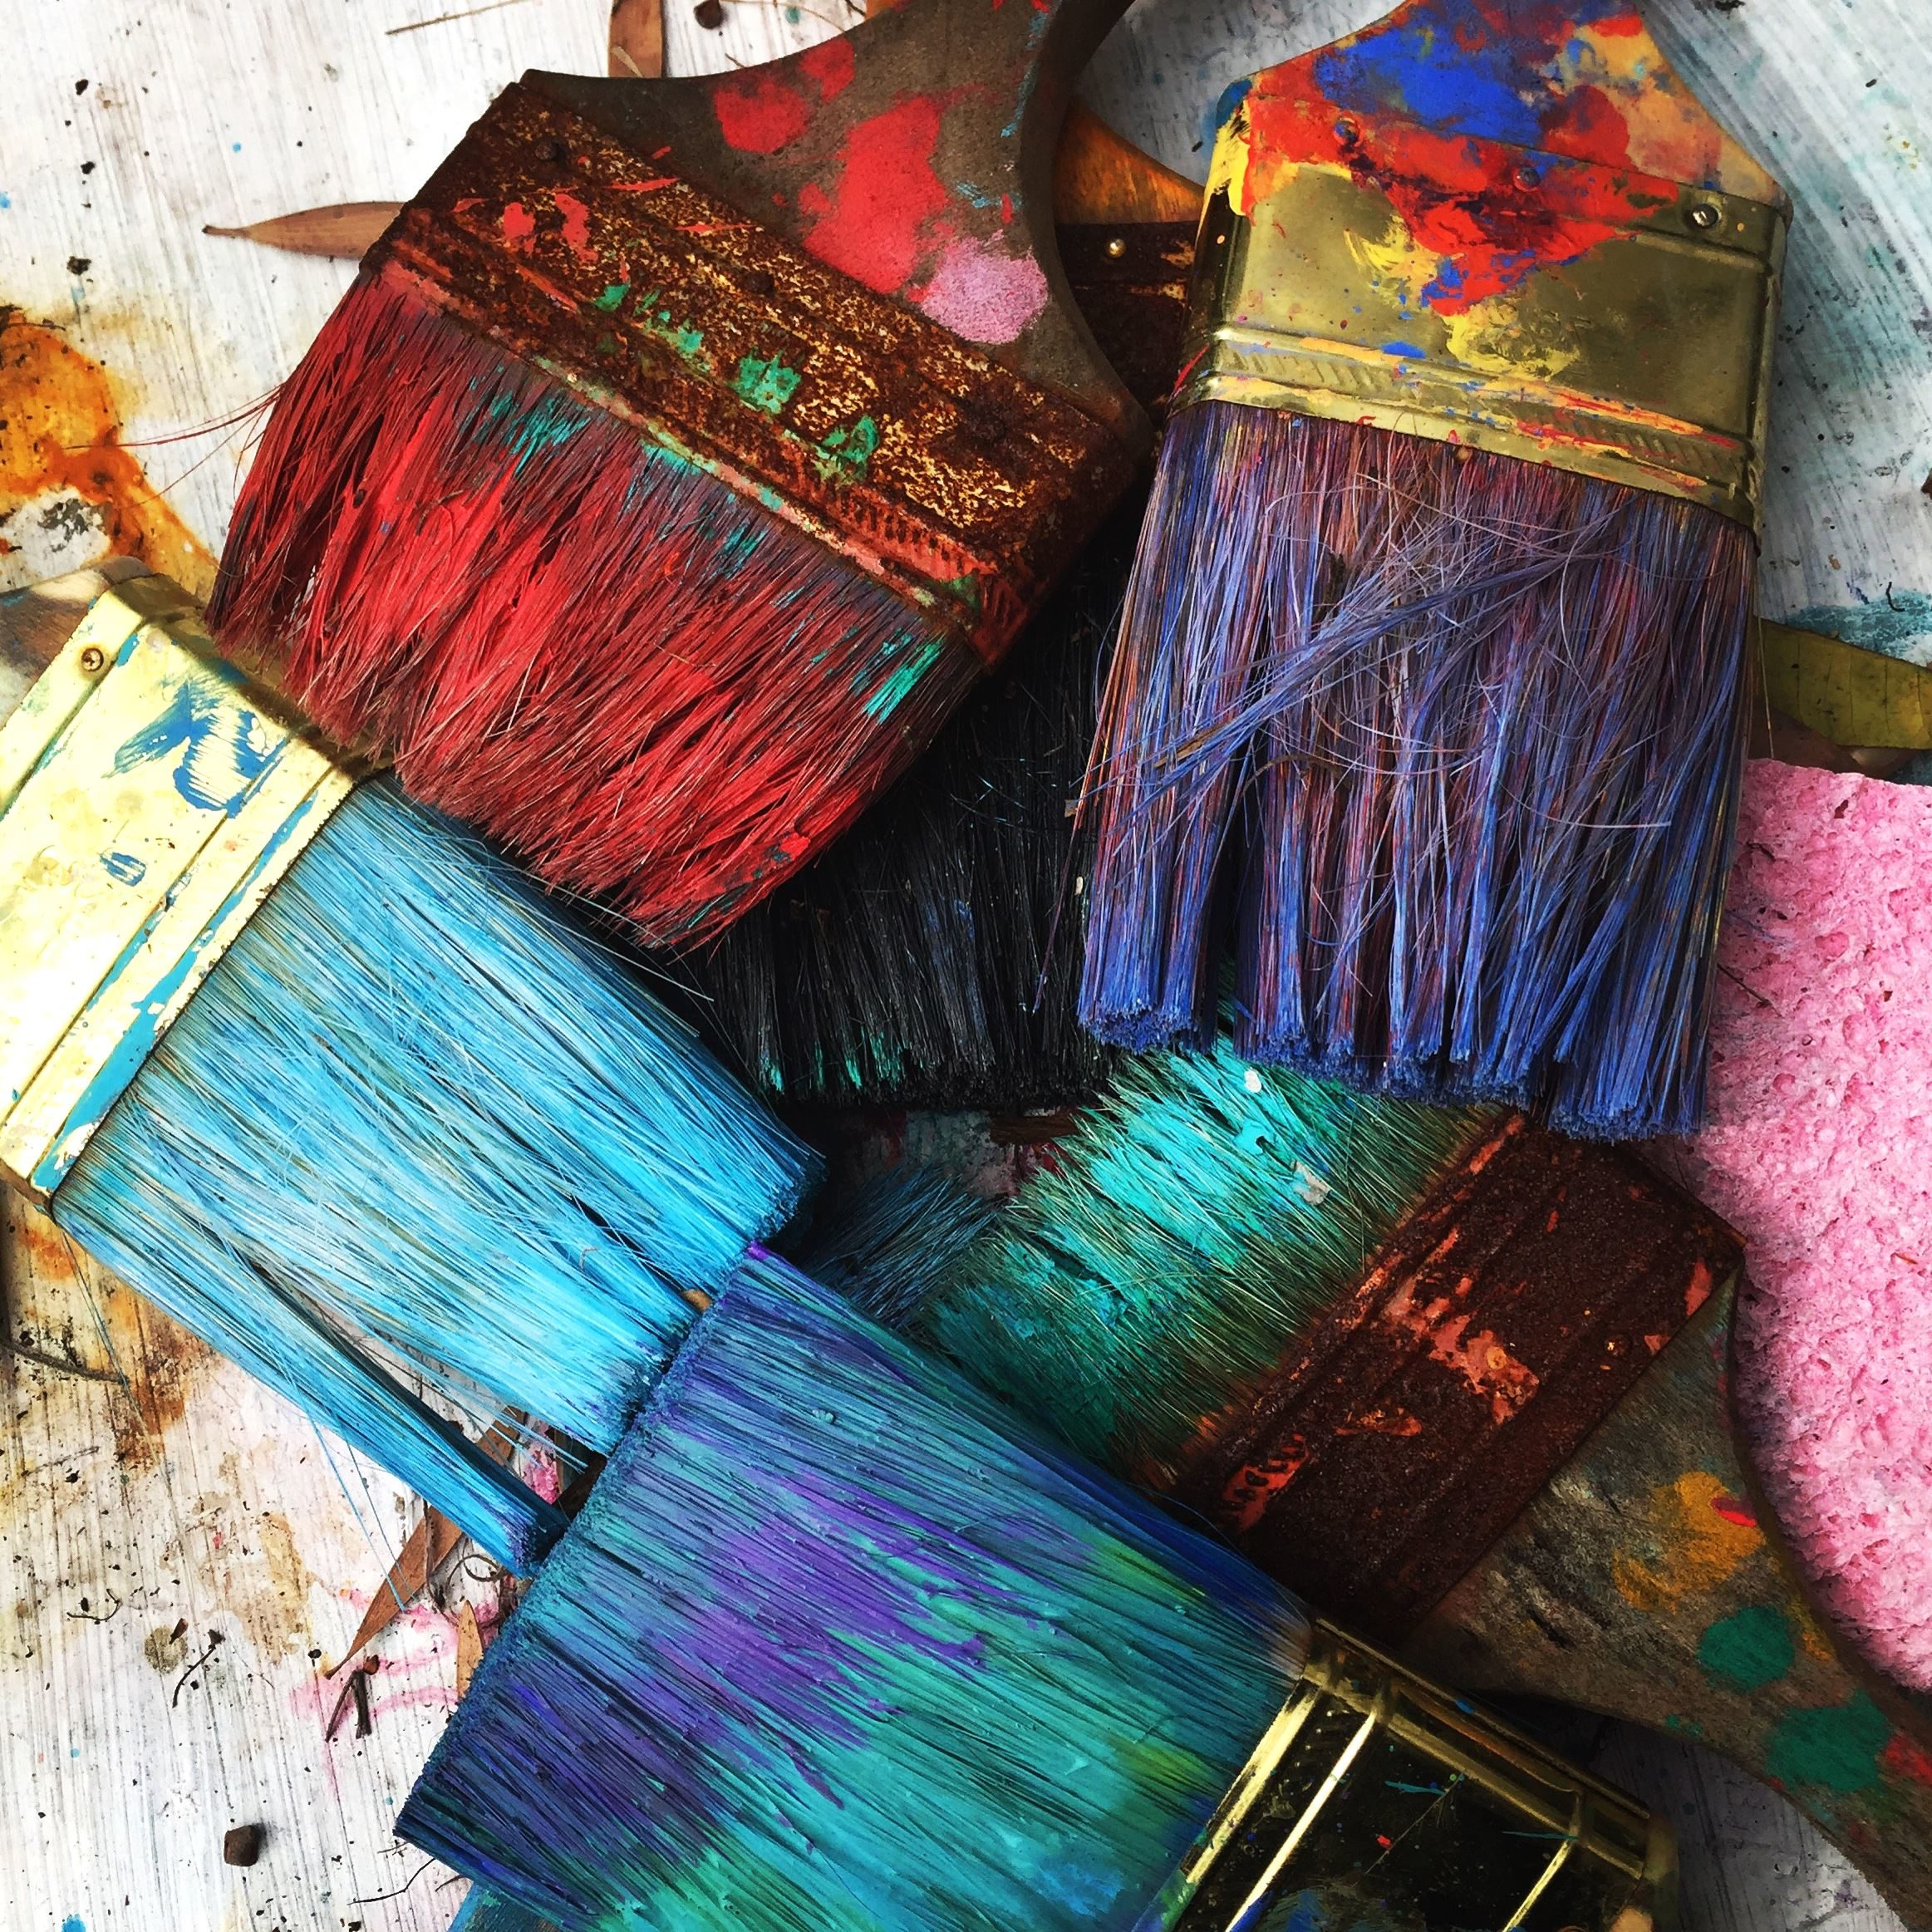 Images Of Paint And Paint Brushes